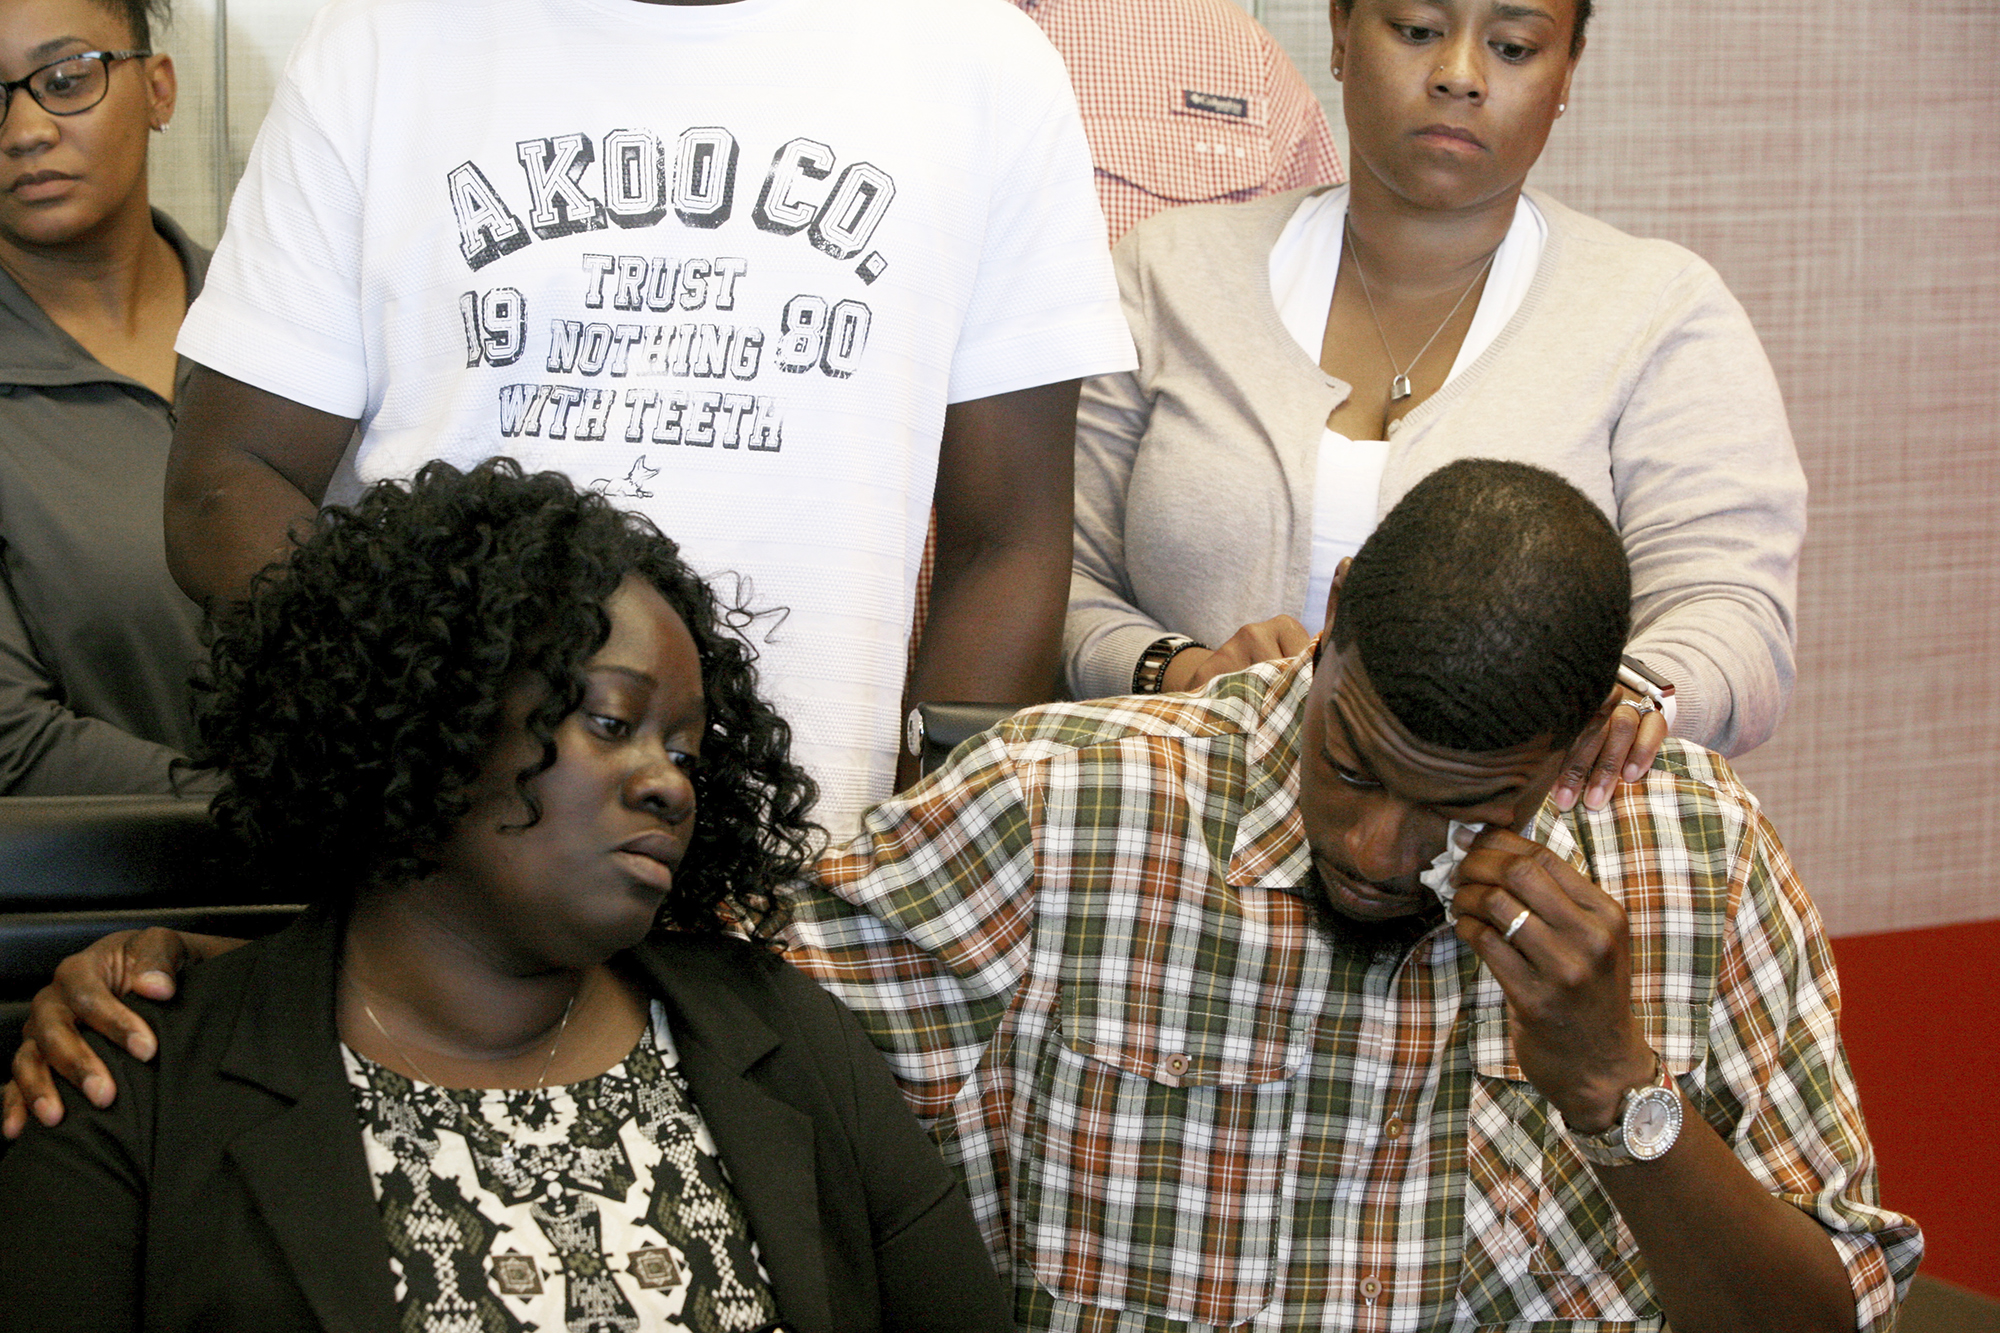 Odell Edwards wipes away tears as he sits with his wife, Charmaine Edwards, listening to their attorney Lee Merritt talking about the death of their son, Jordan Edwards, in a police shooting Saturday in Balch Springs, Texas, in Merritt's law office in Dallas, on May 1, 2017.